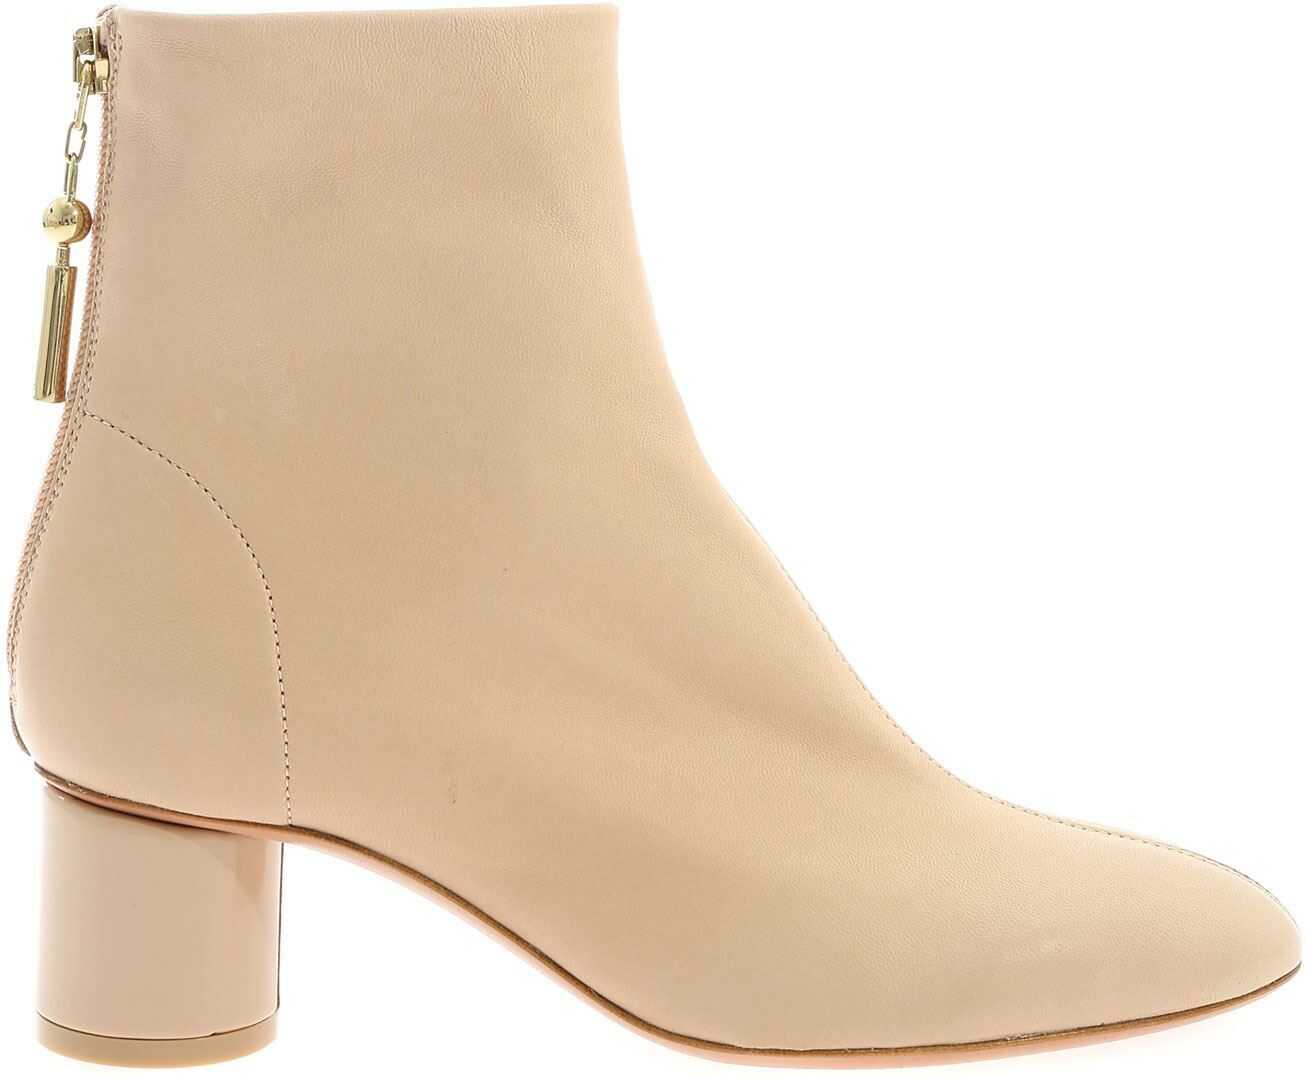 Anna Baiguera Annalia Ankle Boots In Pink Pink